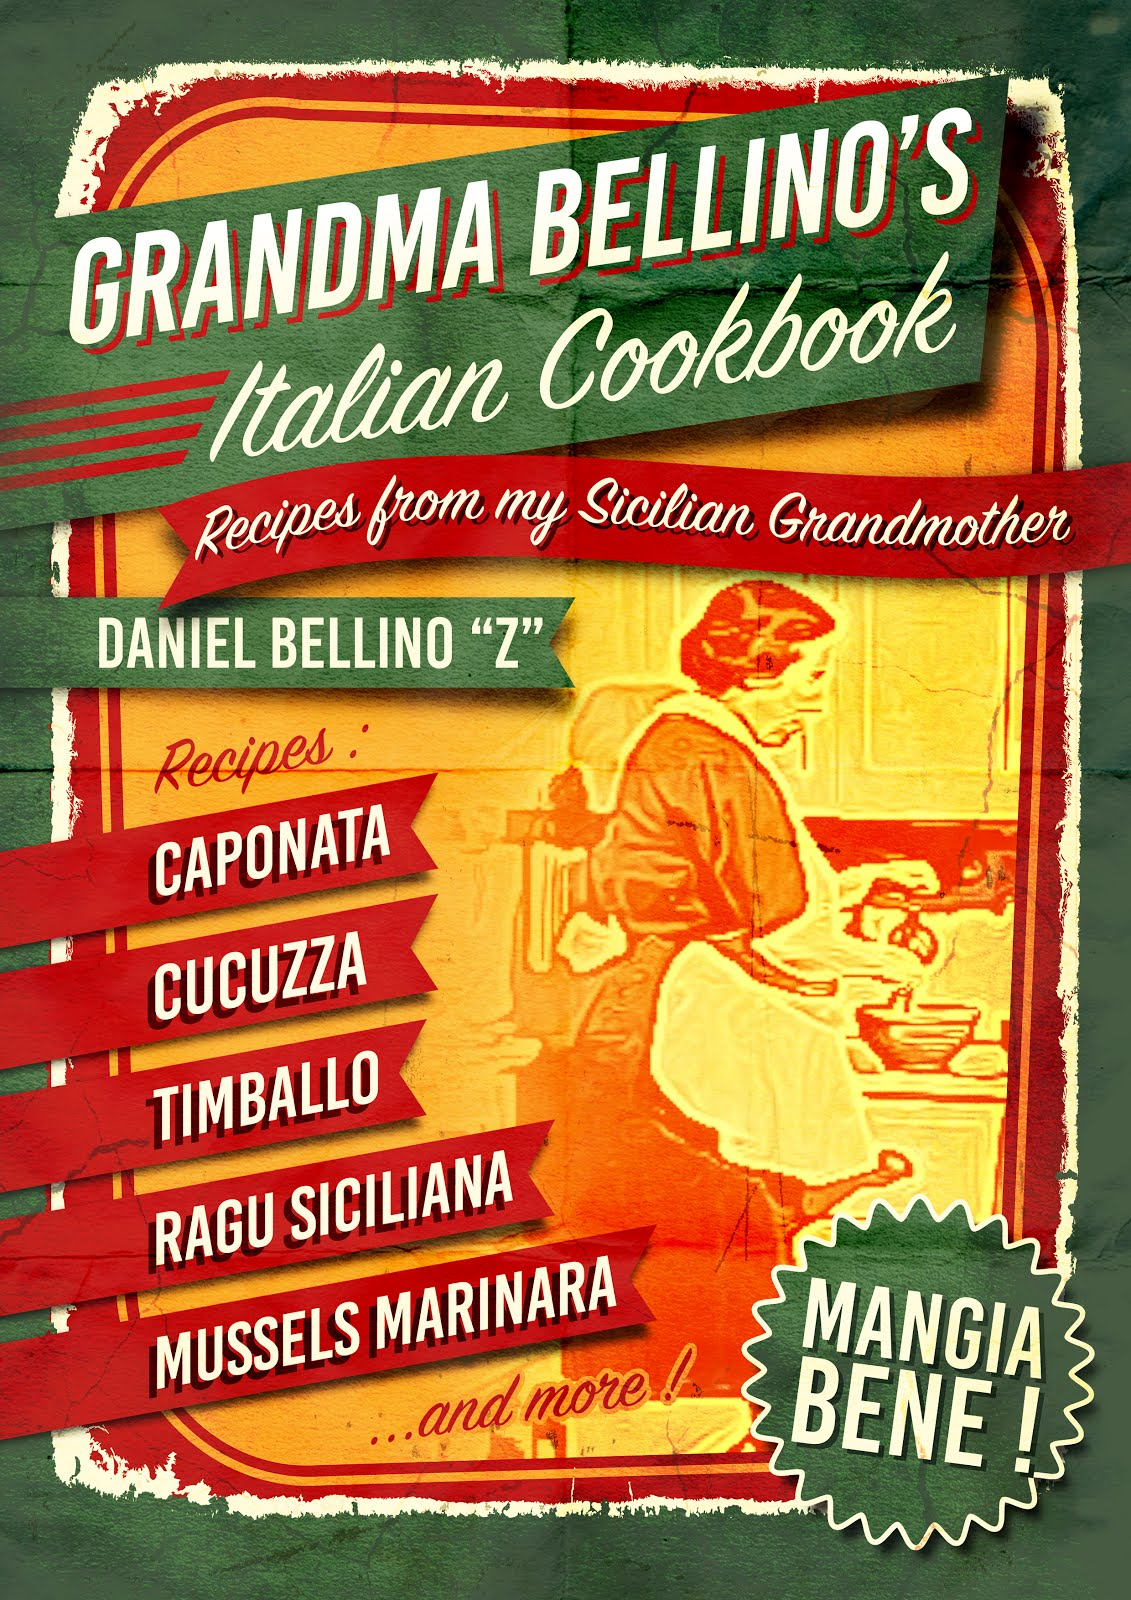 GRANDMA BELLINO 'S ITALIAN COOKBOOK